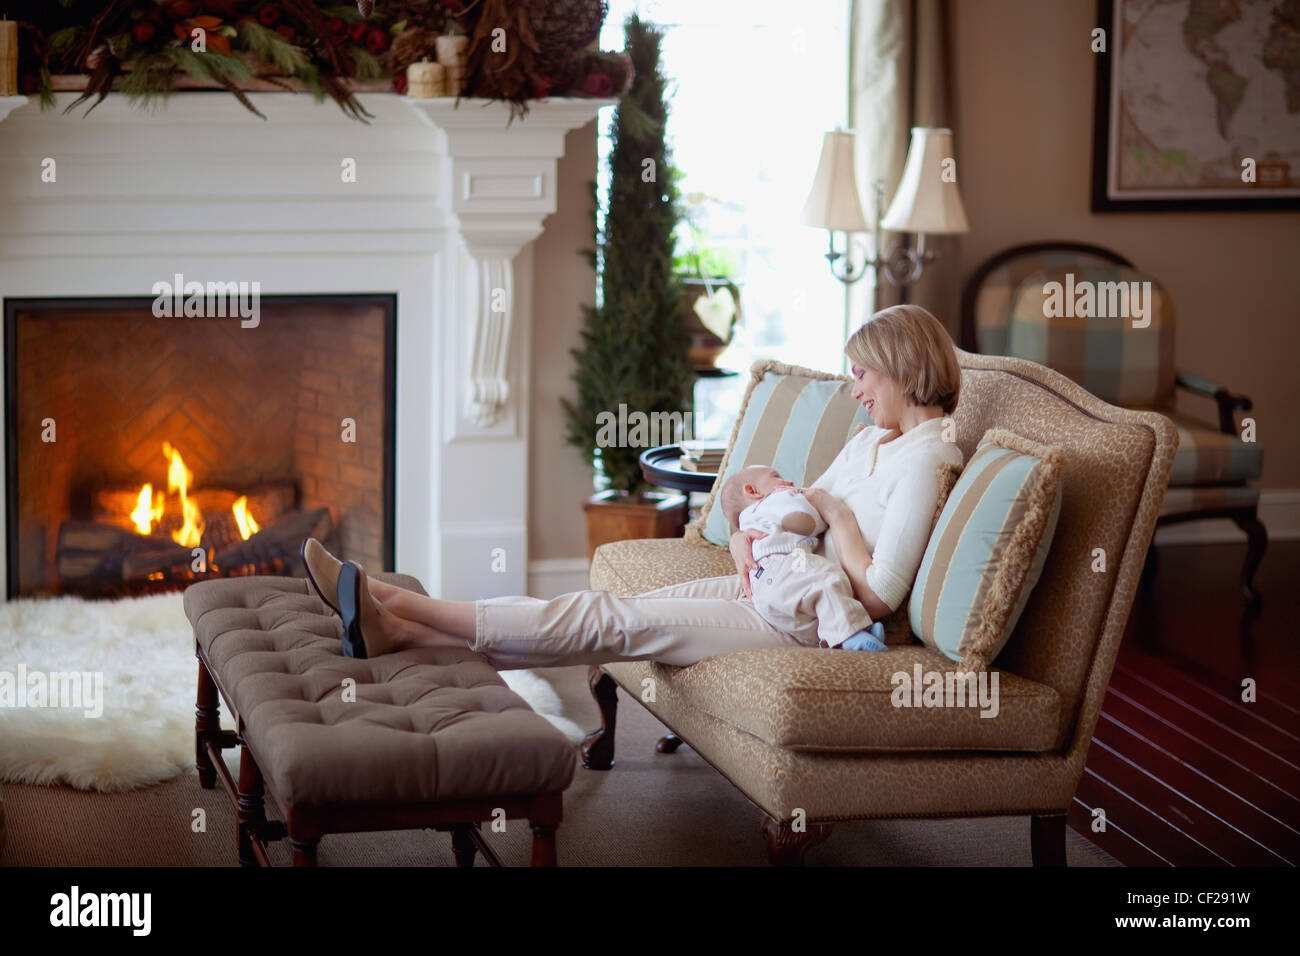 A Mother Holding Her Baby By A Fireplace In The Living Room ...